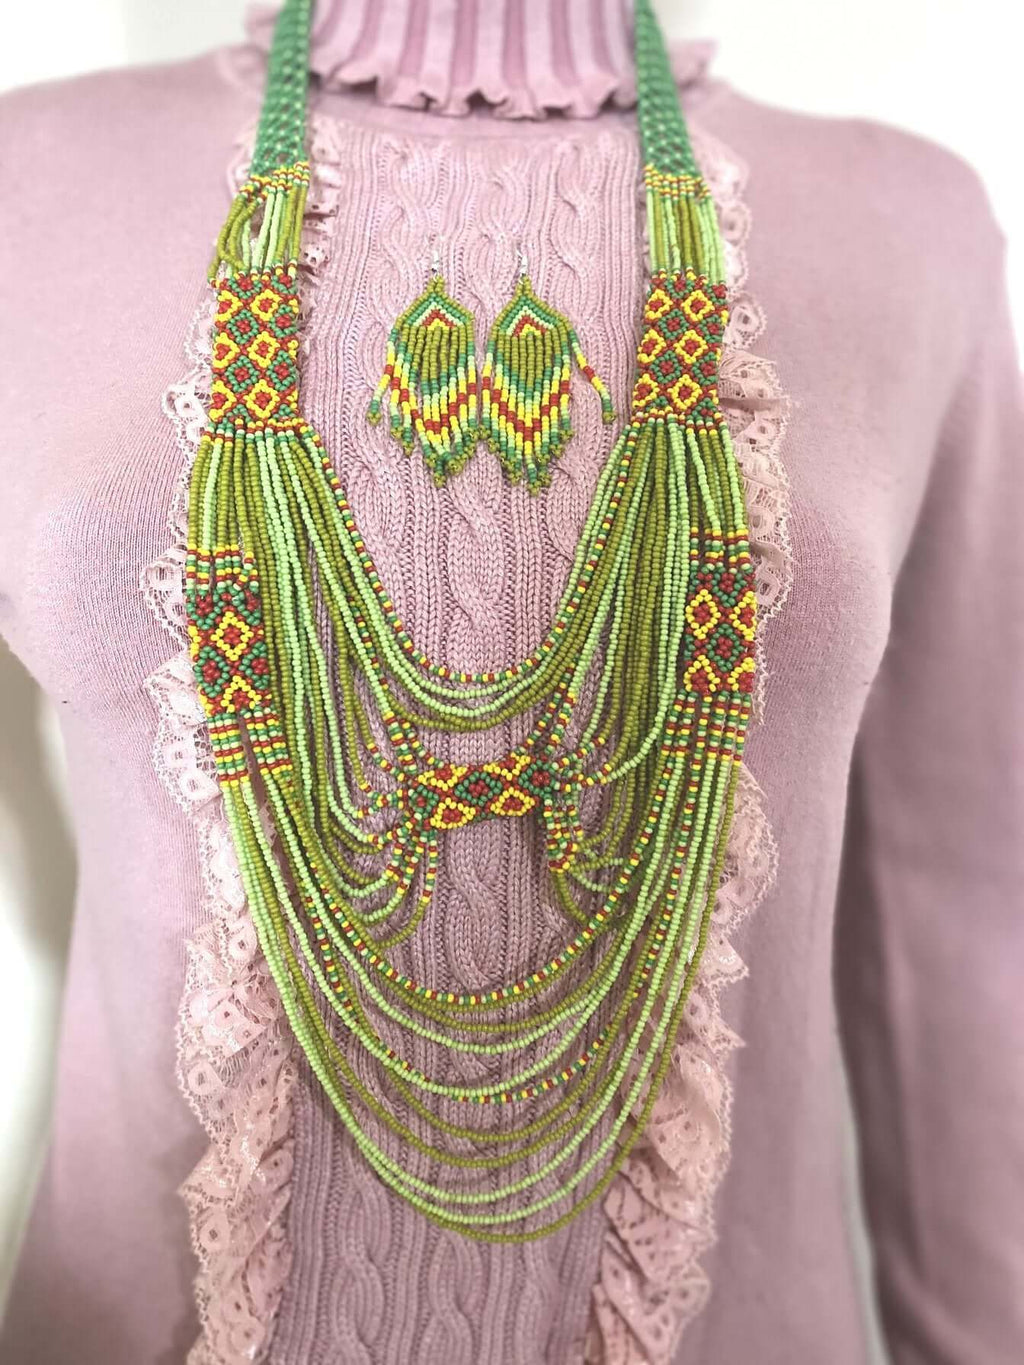 Handcrafted Bead embroidery African necklace earrings set